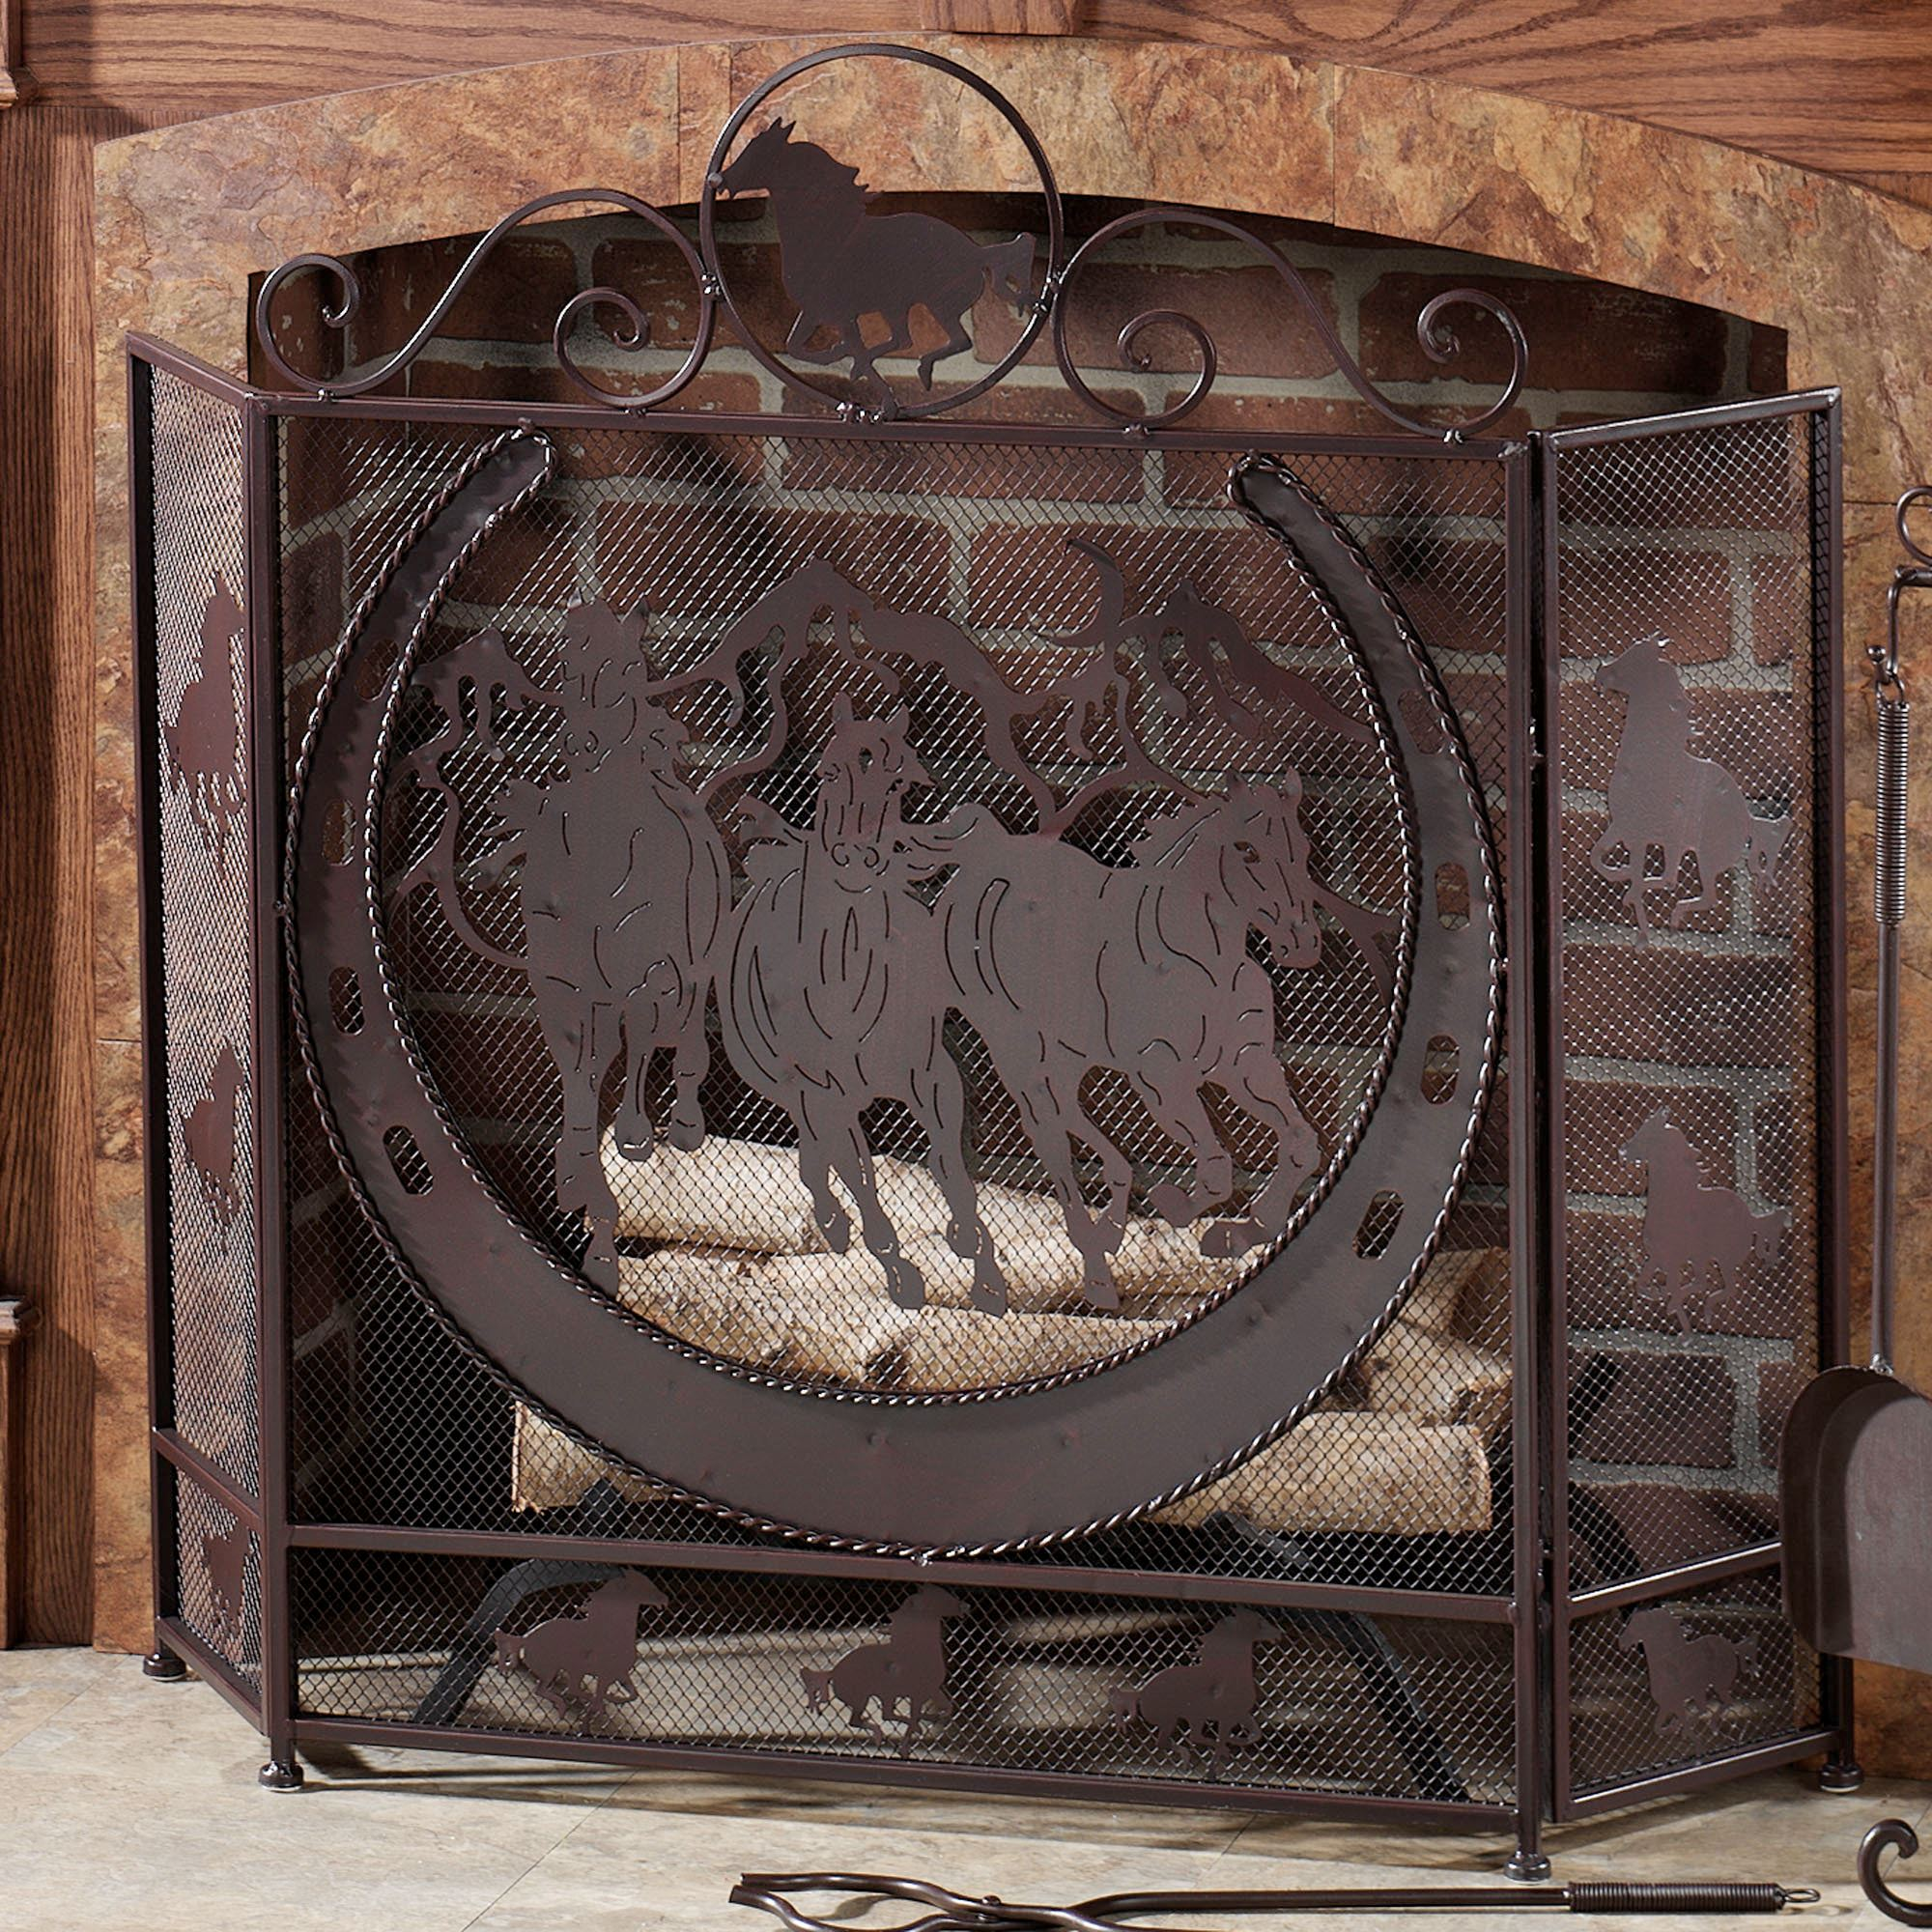 You can almost hear the Thundering Hooves pounding through your home with this indoor/outdoor metal fireplace screen. Horse fireplace screen has mesh backing...